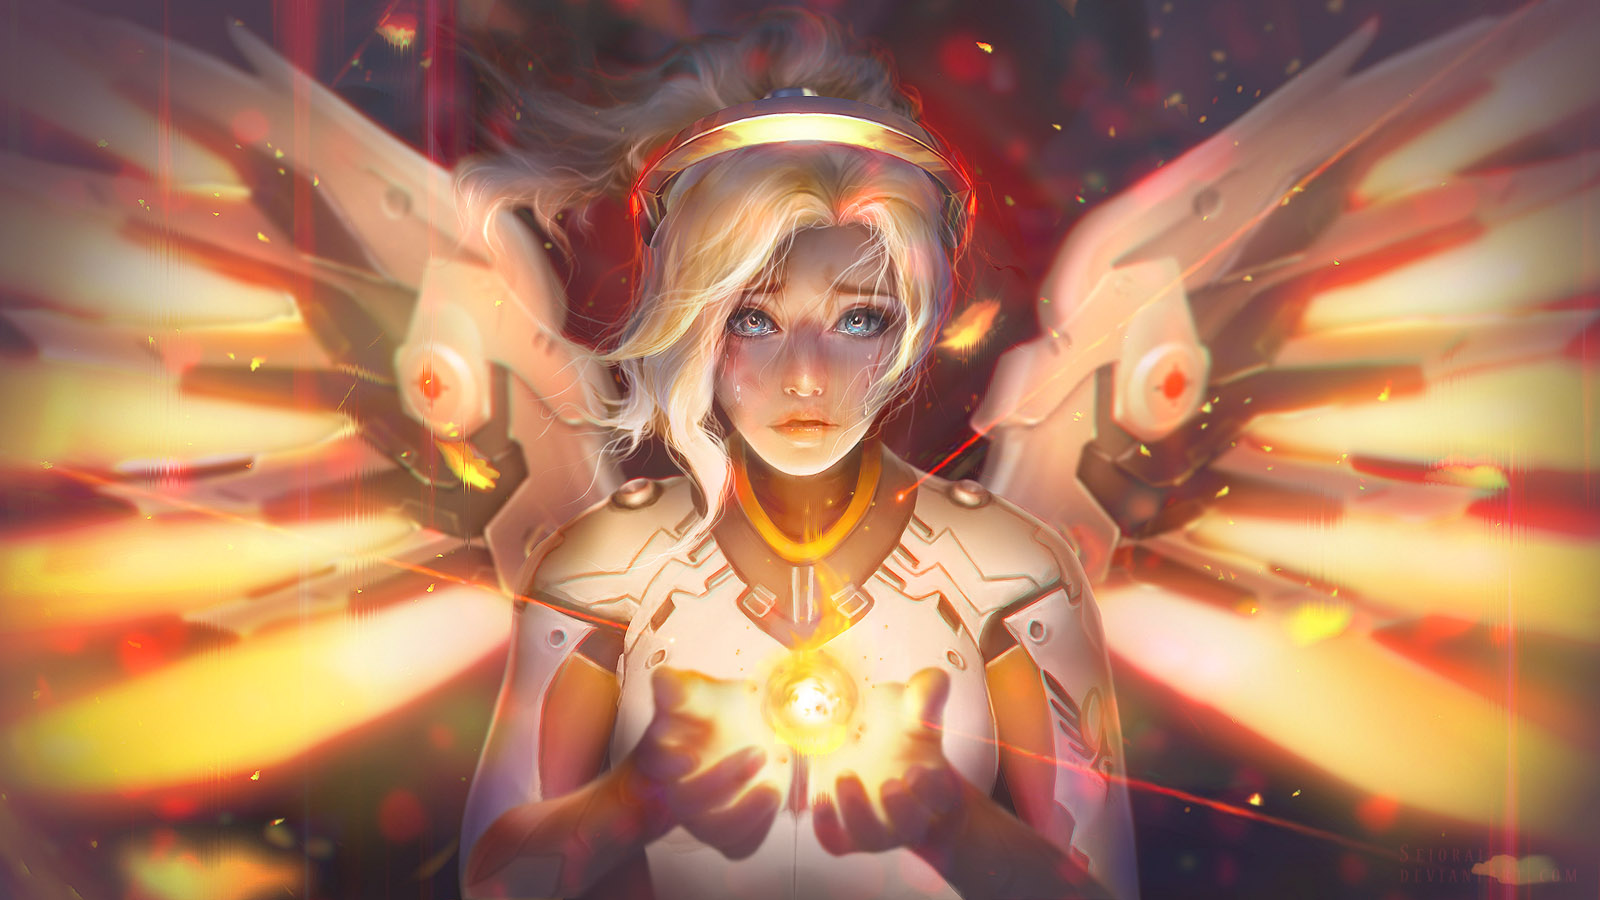 Overwatch mercy art